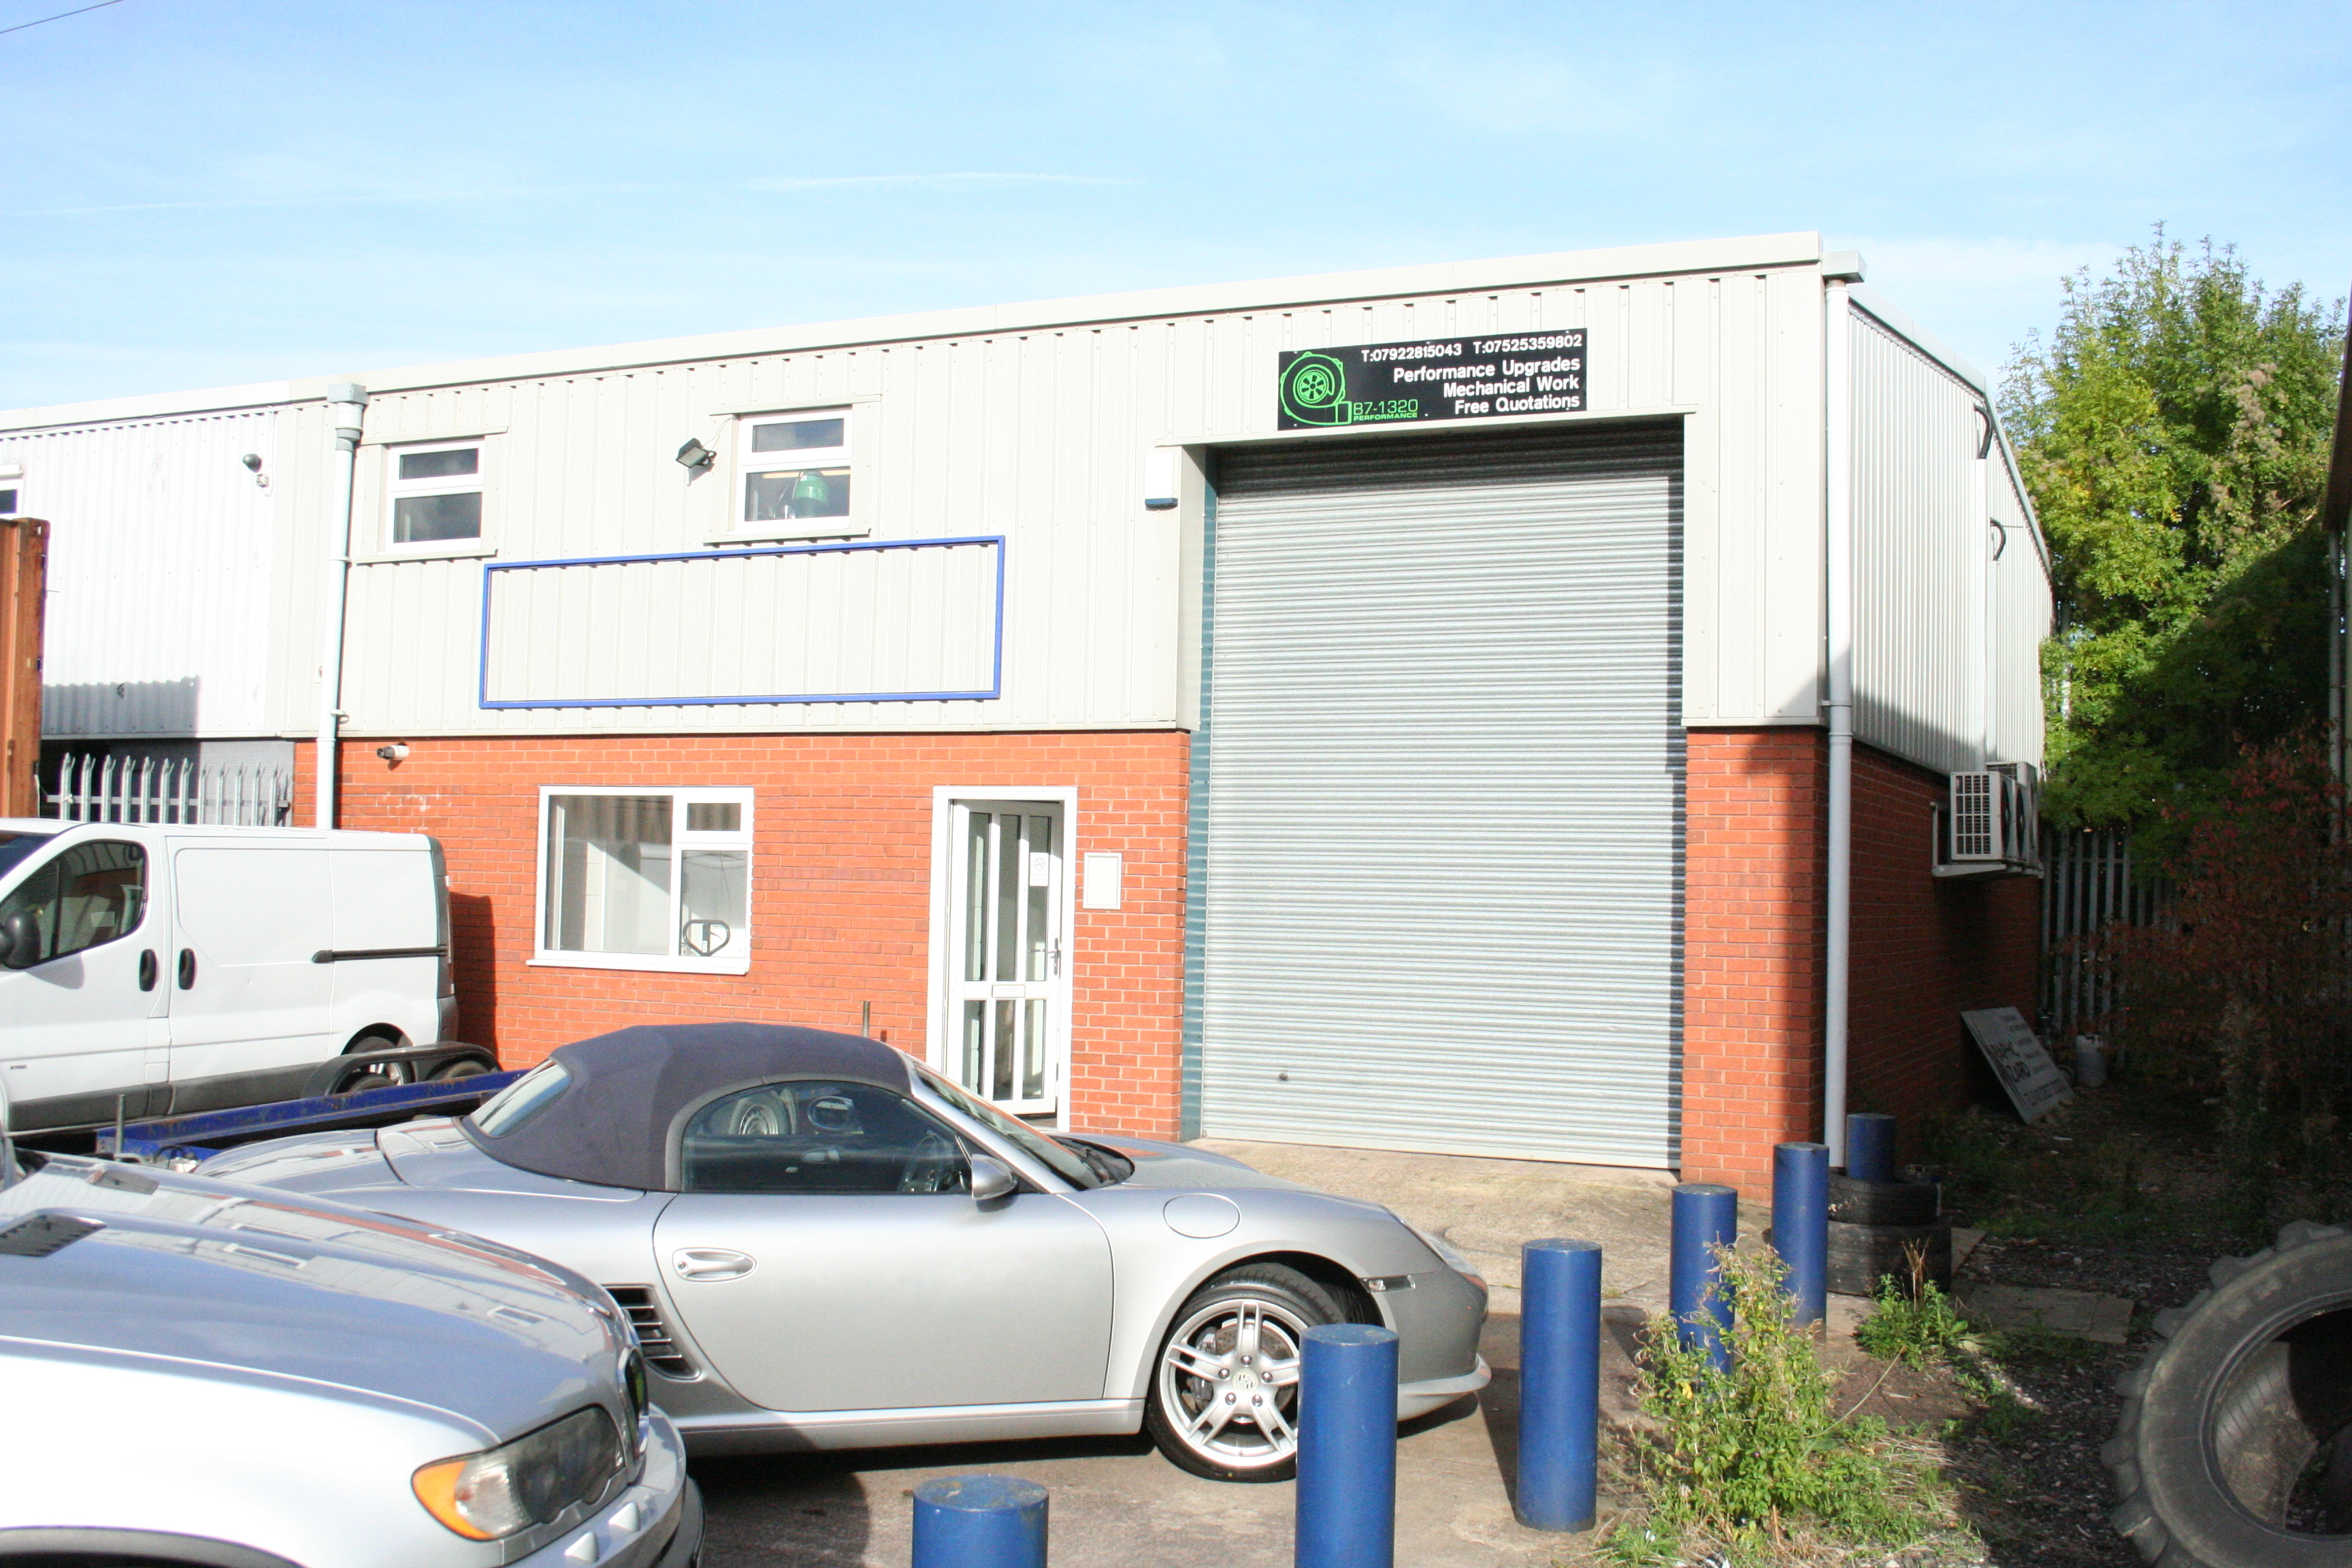 103D KETTLEBROOK ROAD INDUSTRIAL ESTATE B77 1AG